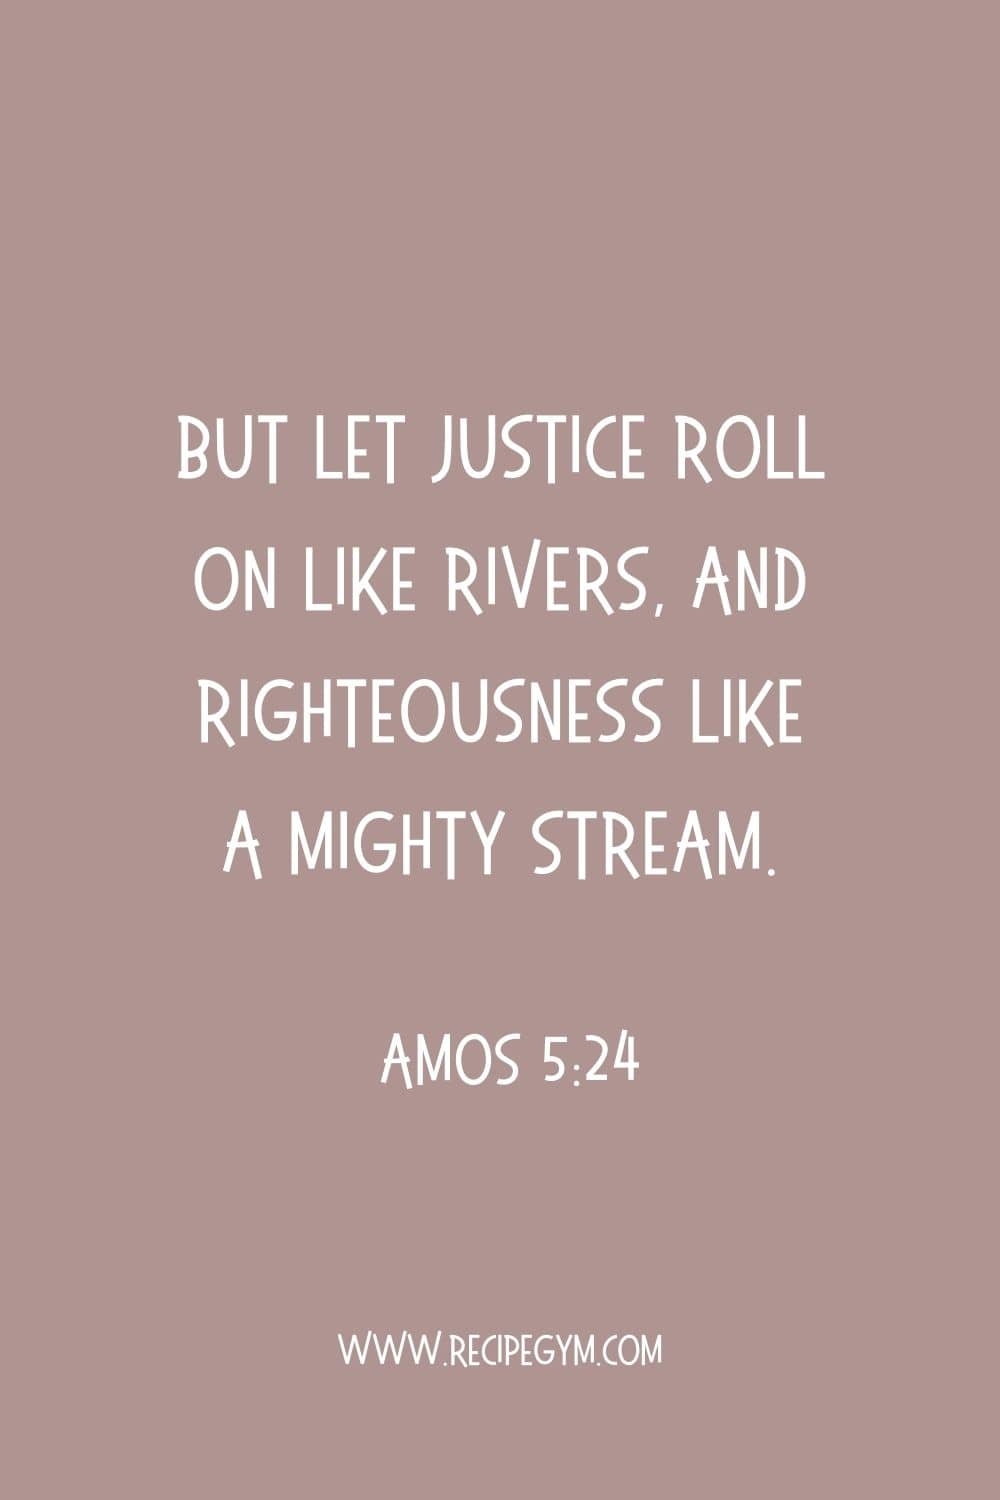 Bible verses about justice bible verses about justice and fairness bible verses about justice and equality bible verse about fairness and equality